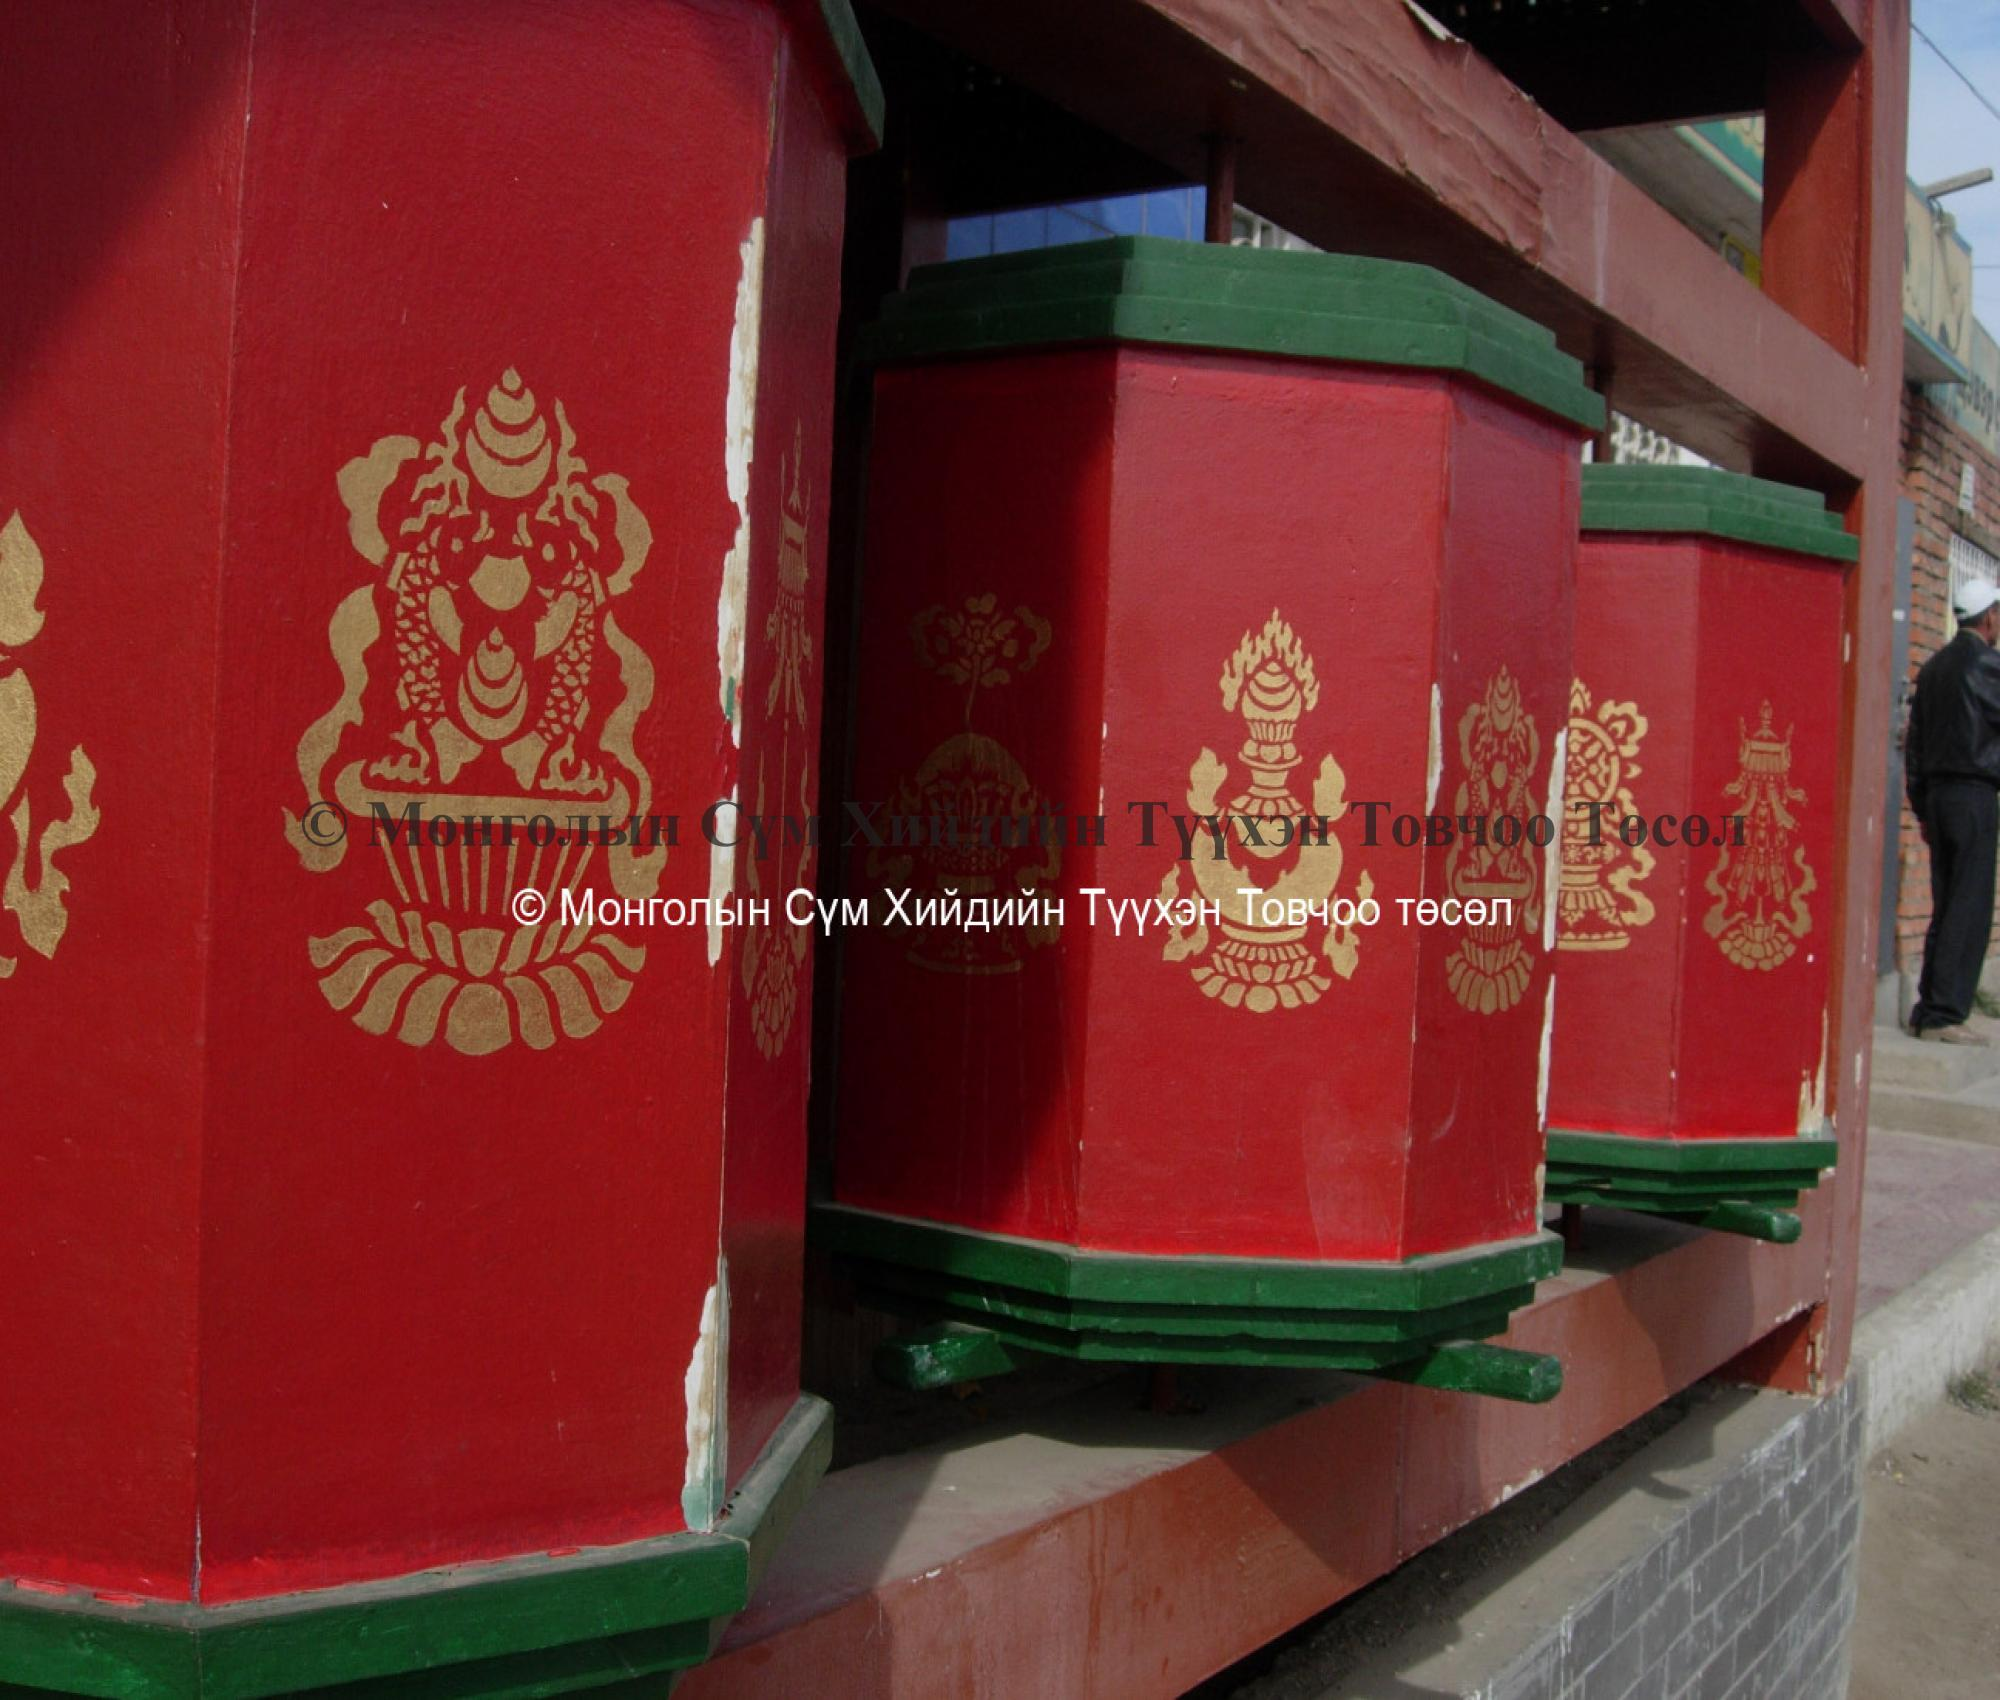 Prayer wheels in front of the temple